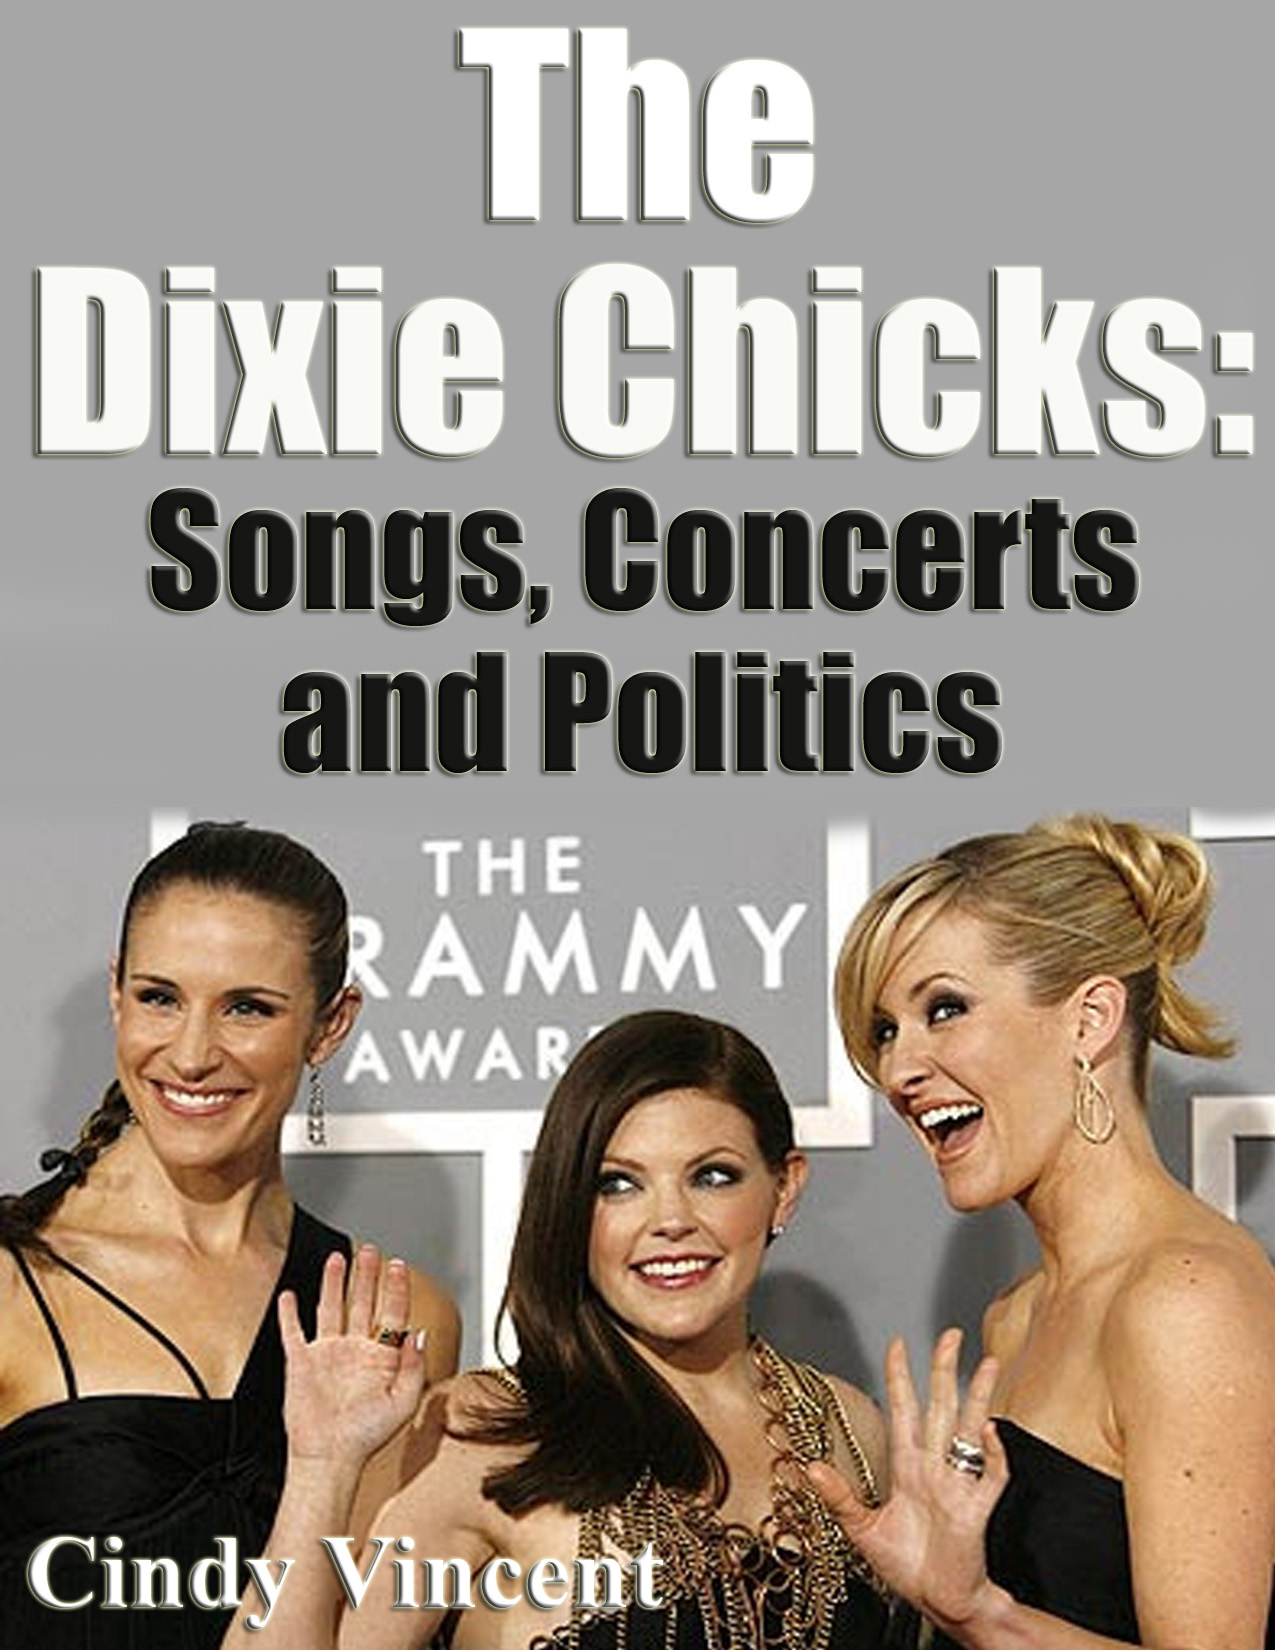 The Dixie Chicks: Songs, Concerts and Politics